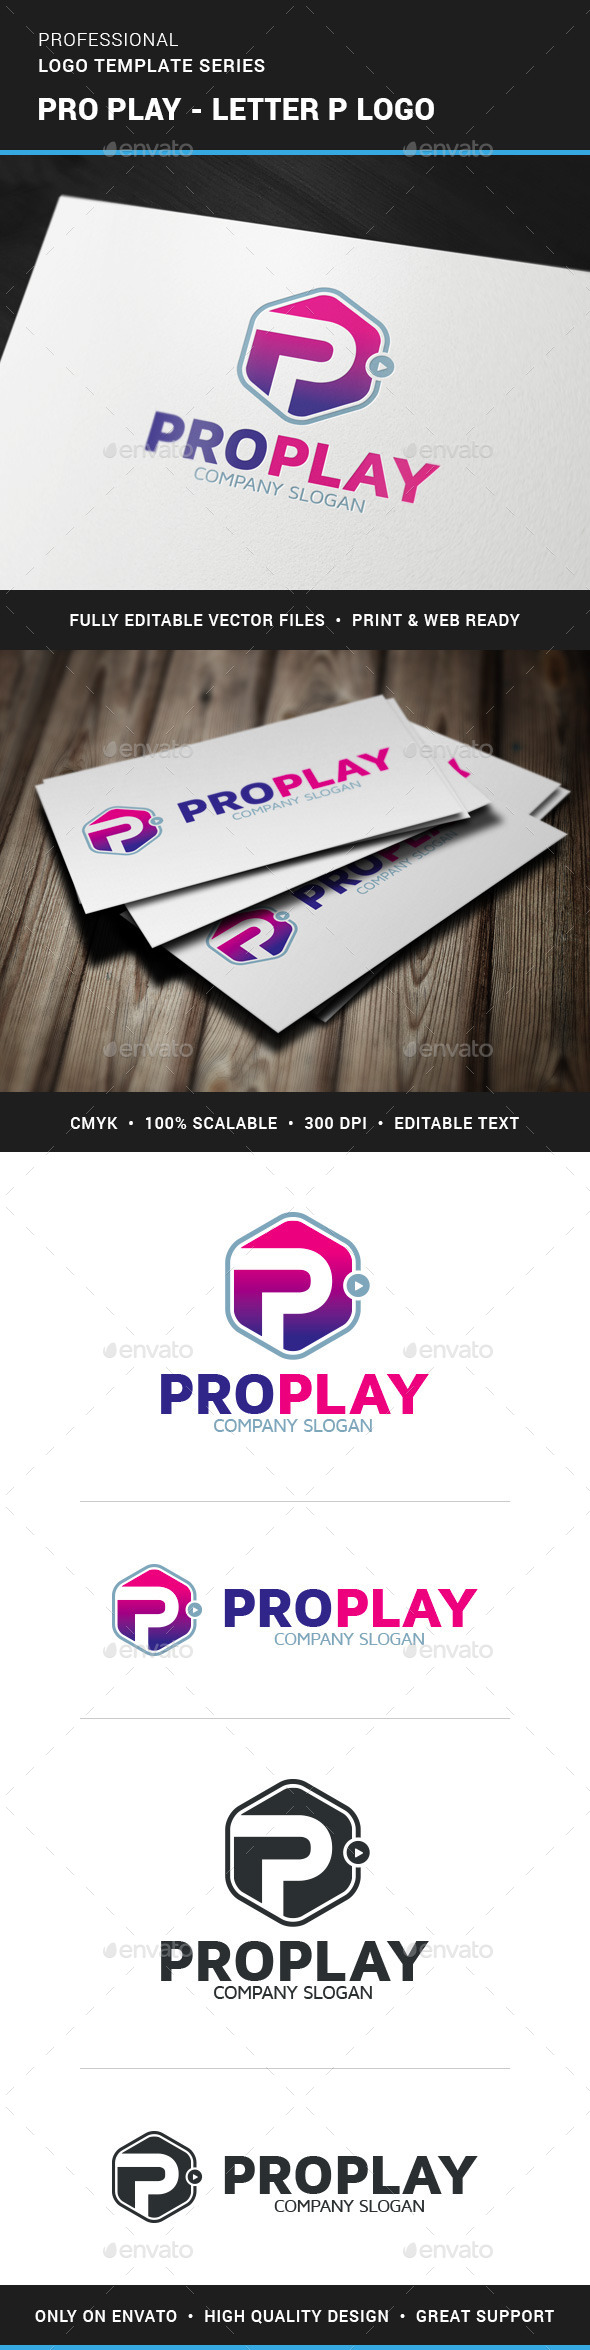 Pro Play - Letter P Logo - Letters Logo Templates